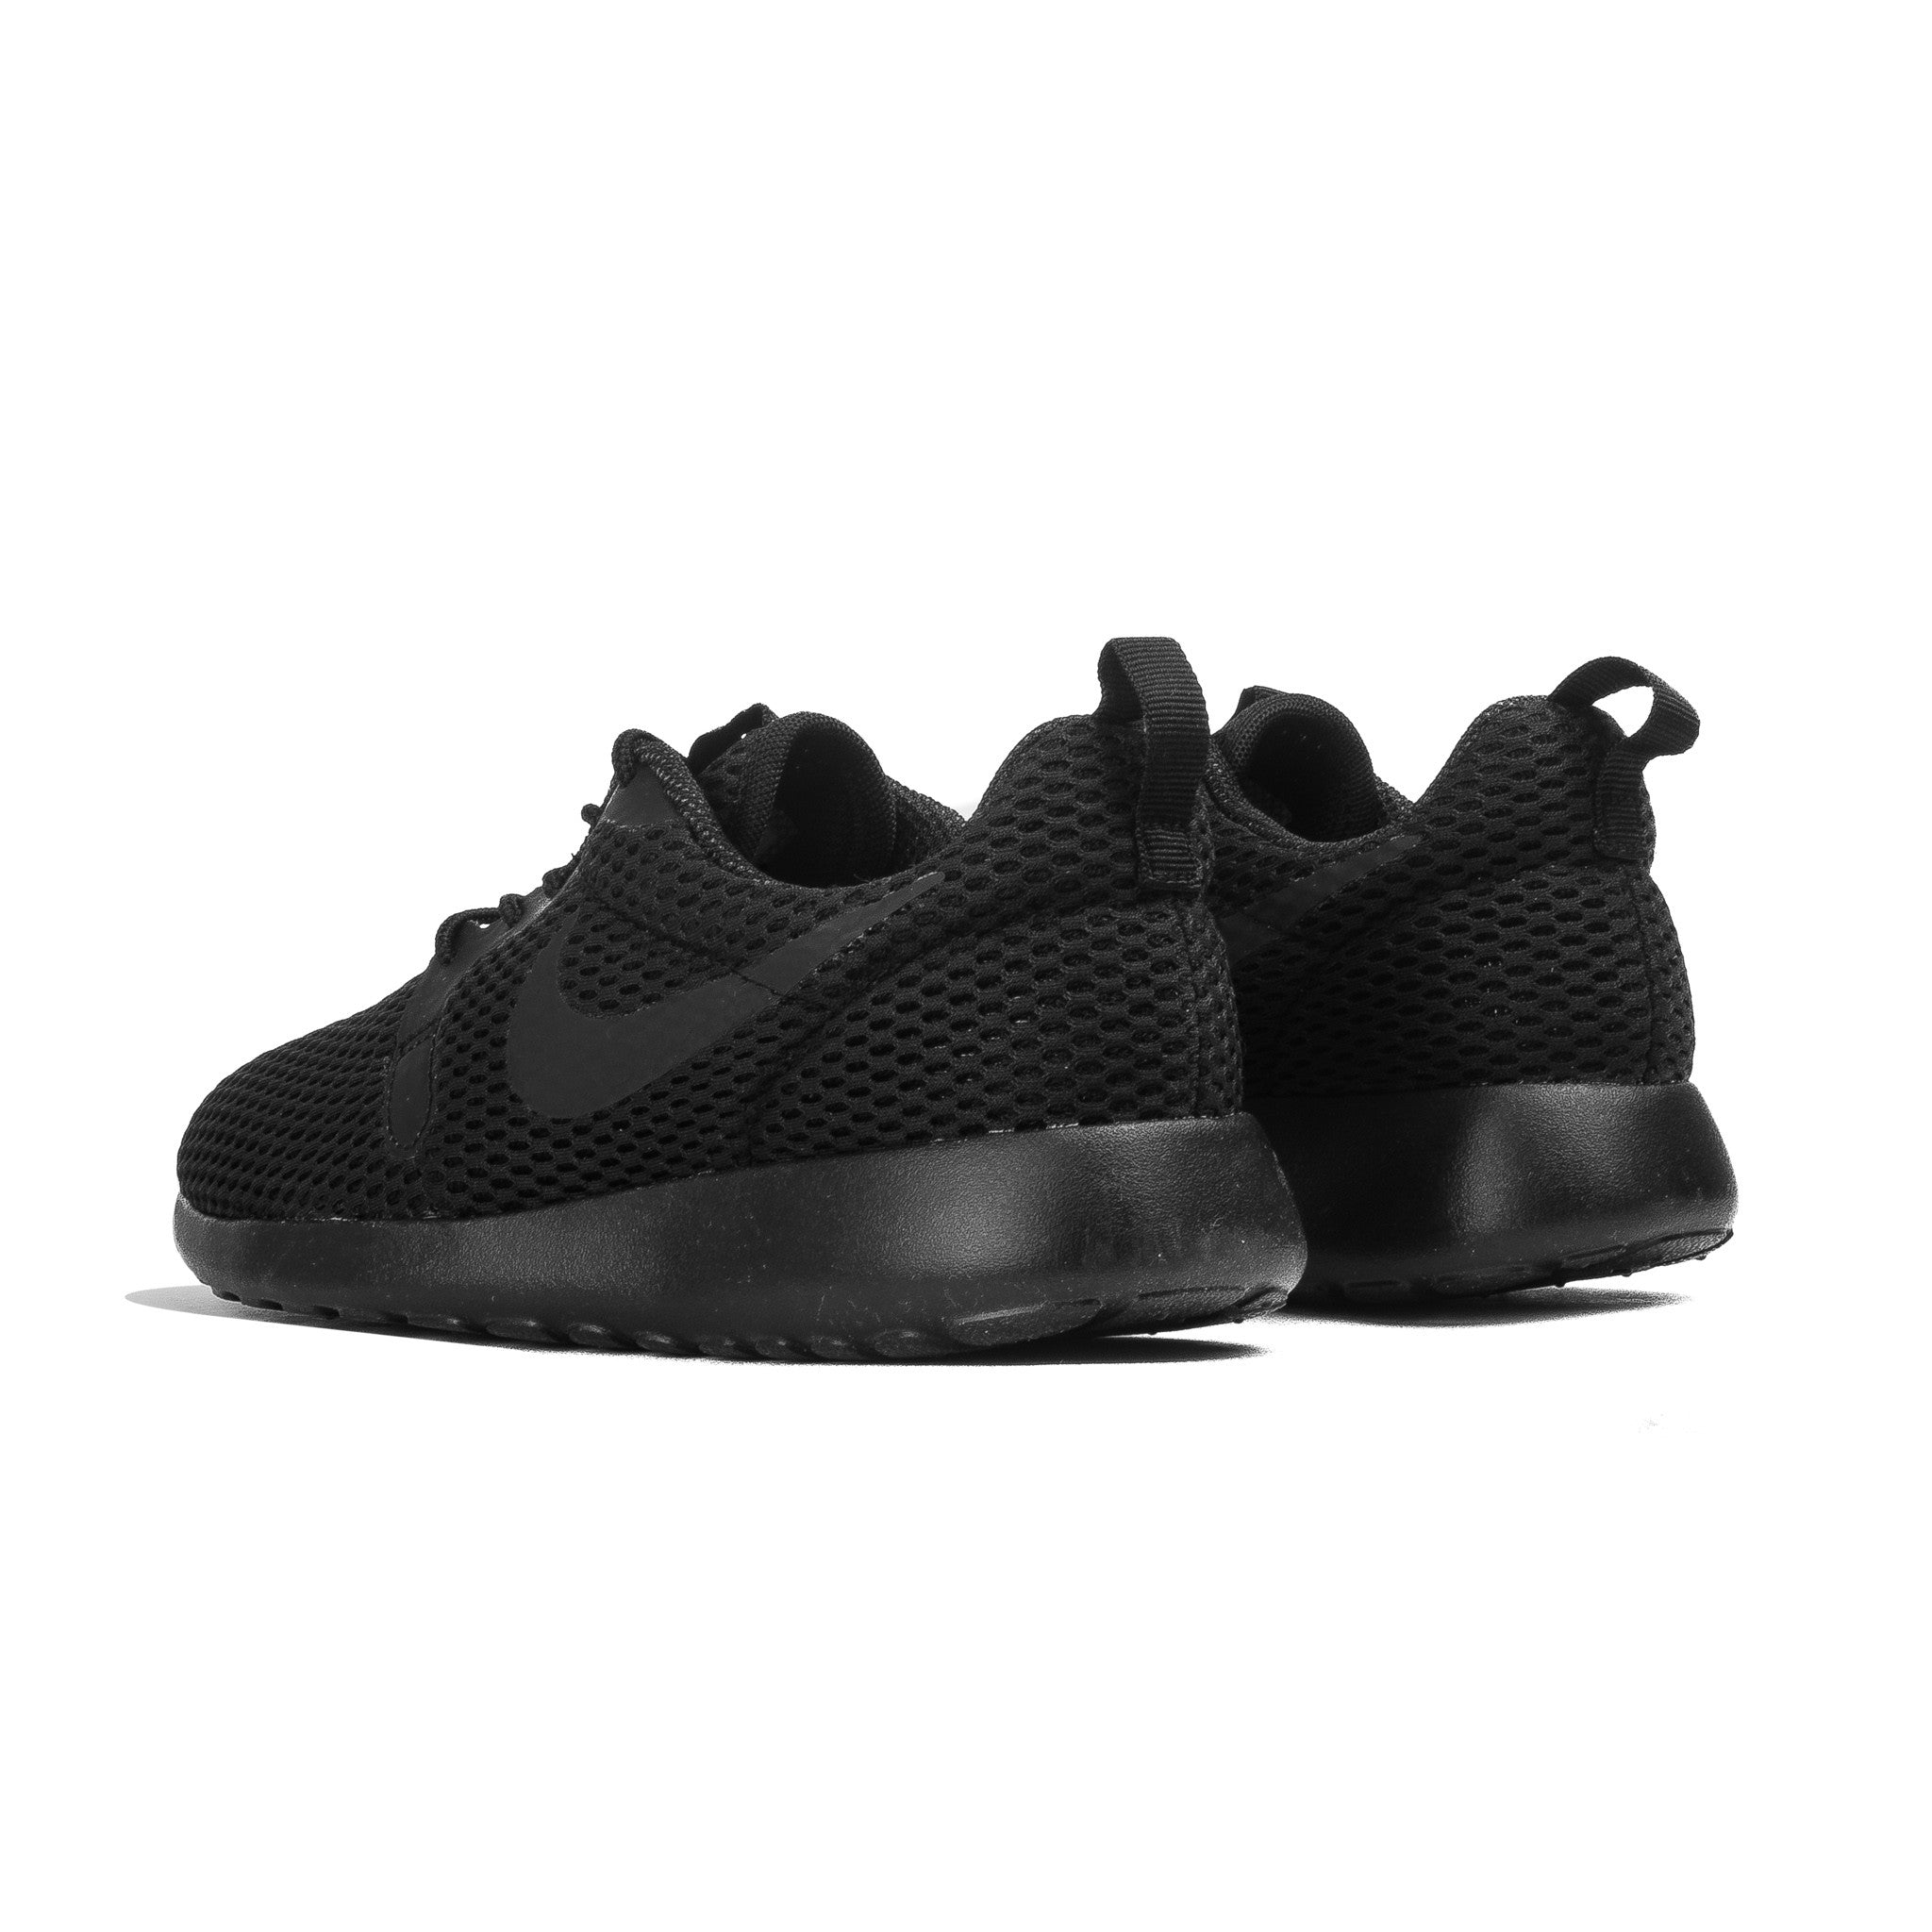 WMNS Roshe One HYP BR 833826-001